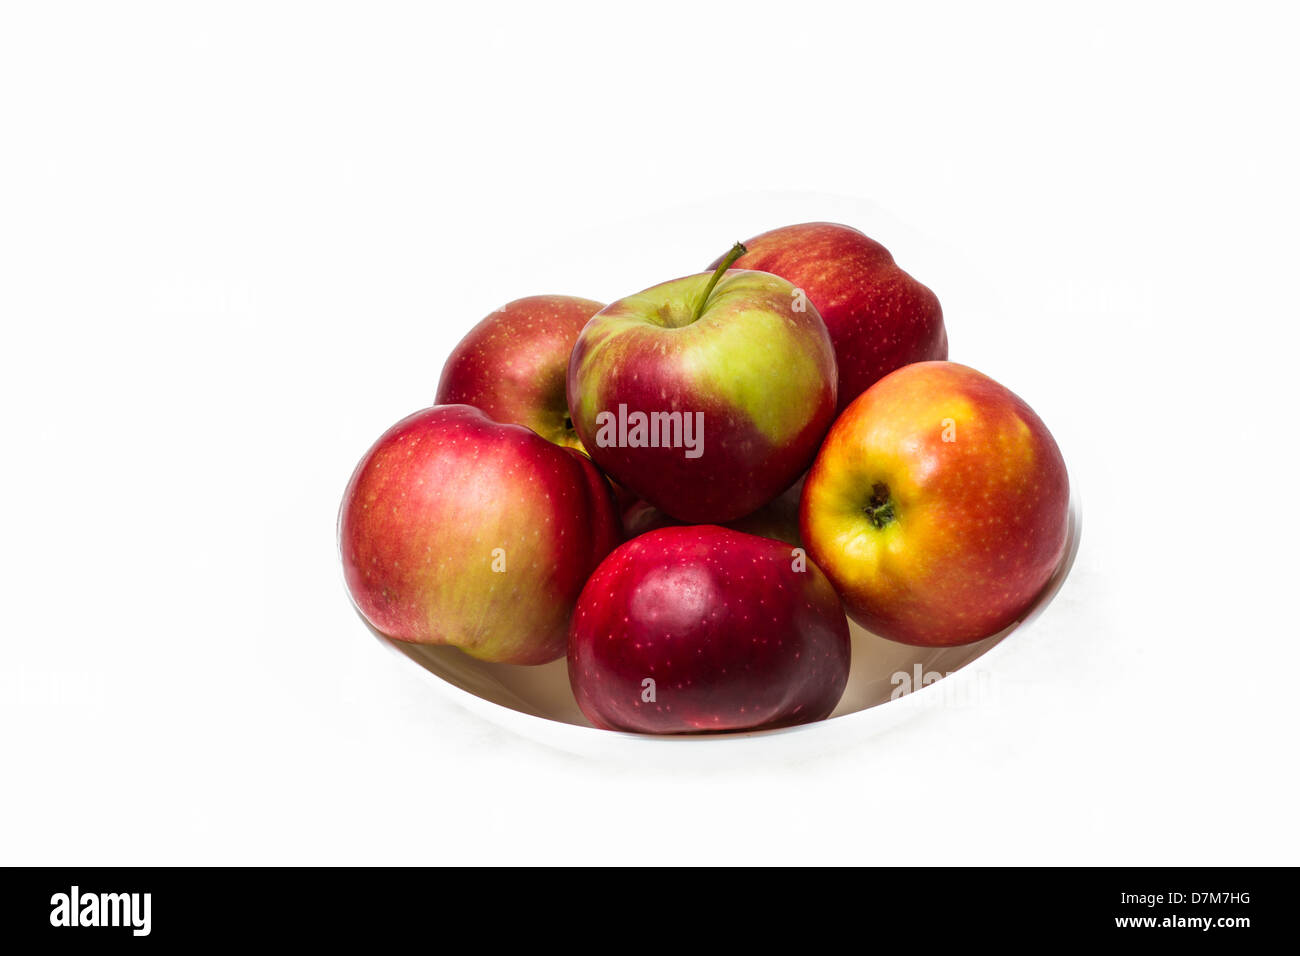 Isolated photo of red apples on a white plate - Stock Image